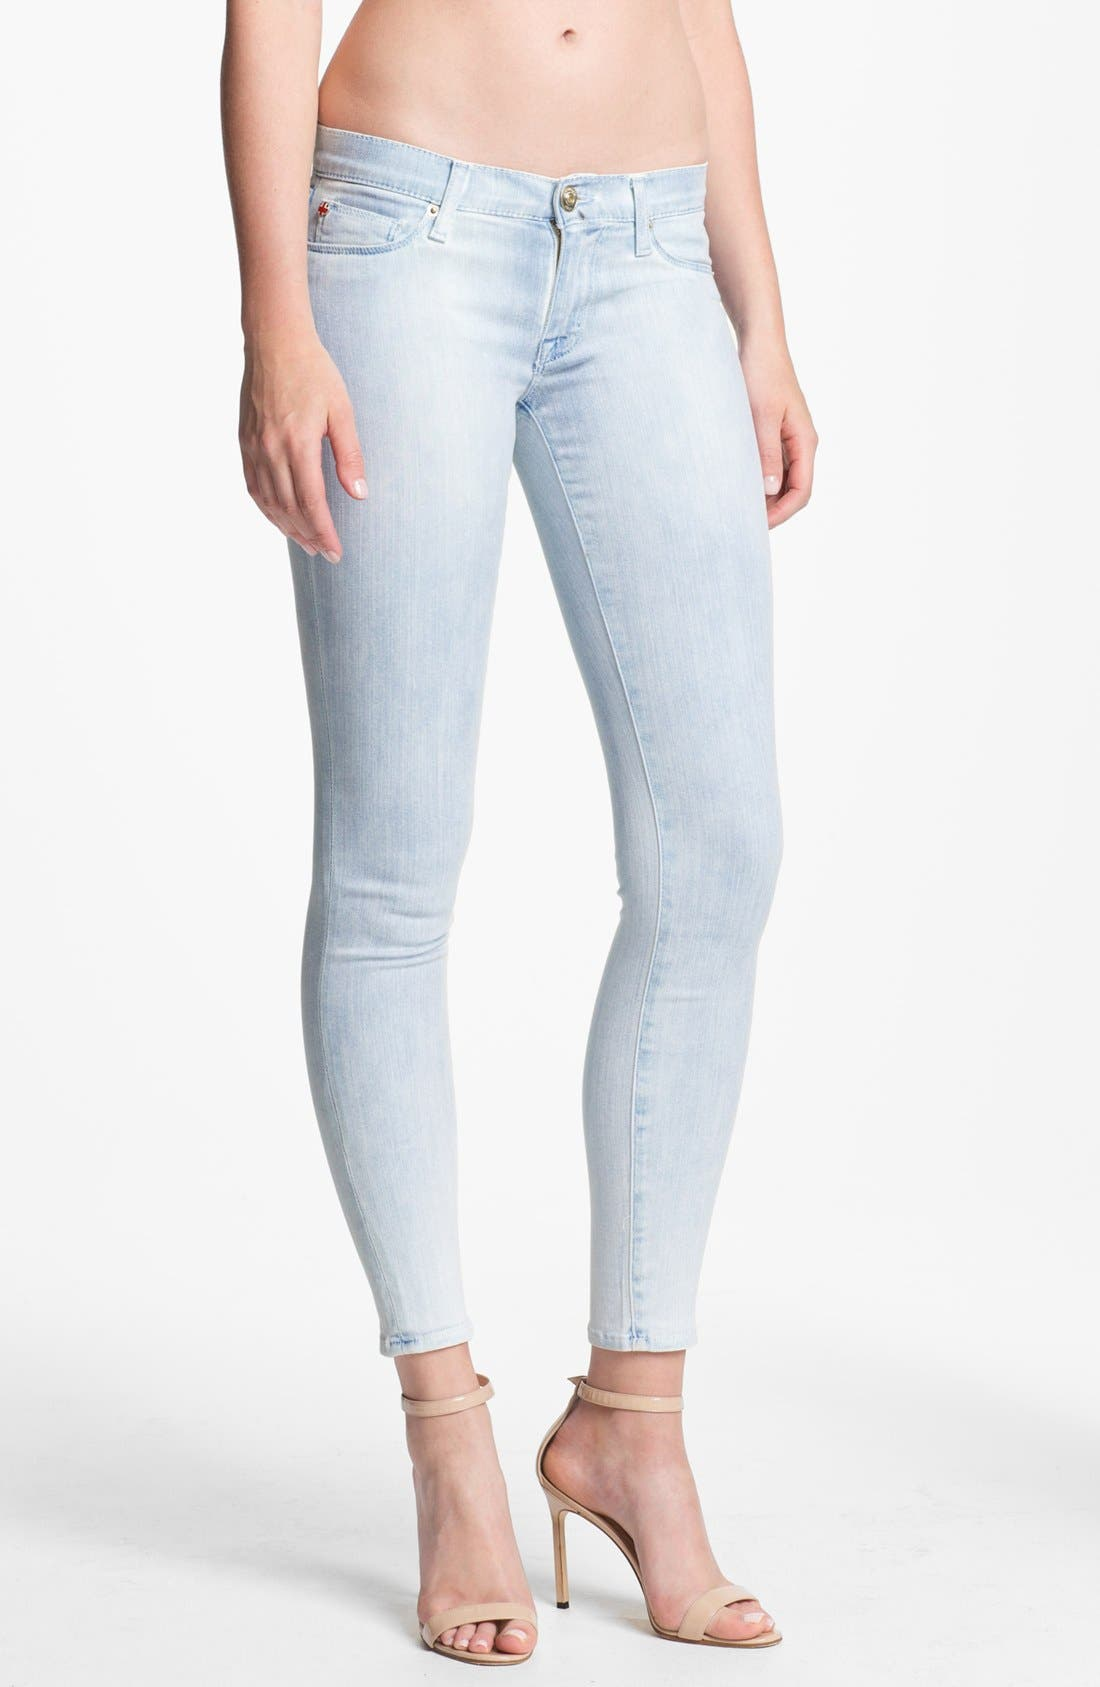 Alternate Image 1 Selected - Hudson Jeans 'Krista' Super Skinny Jeans (Bondi Blue)